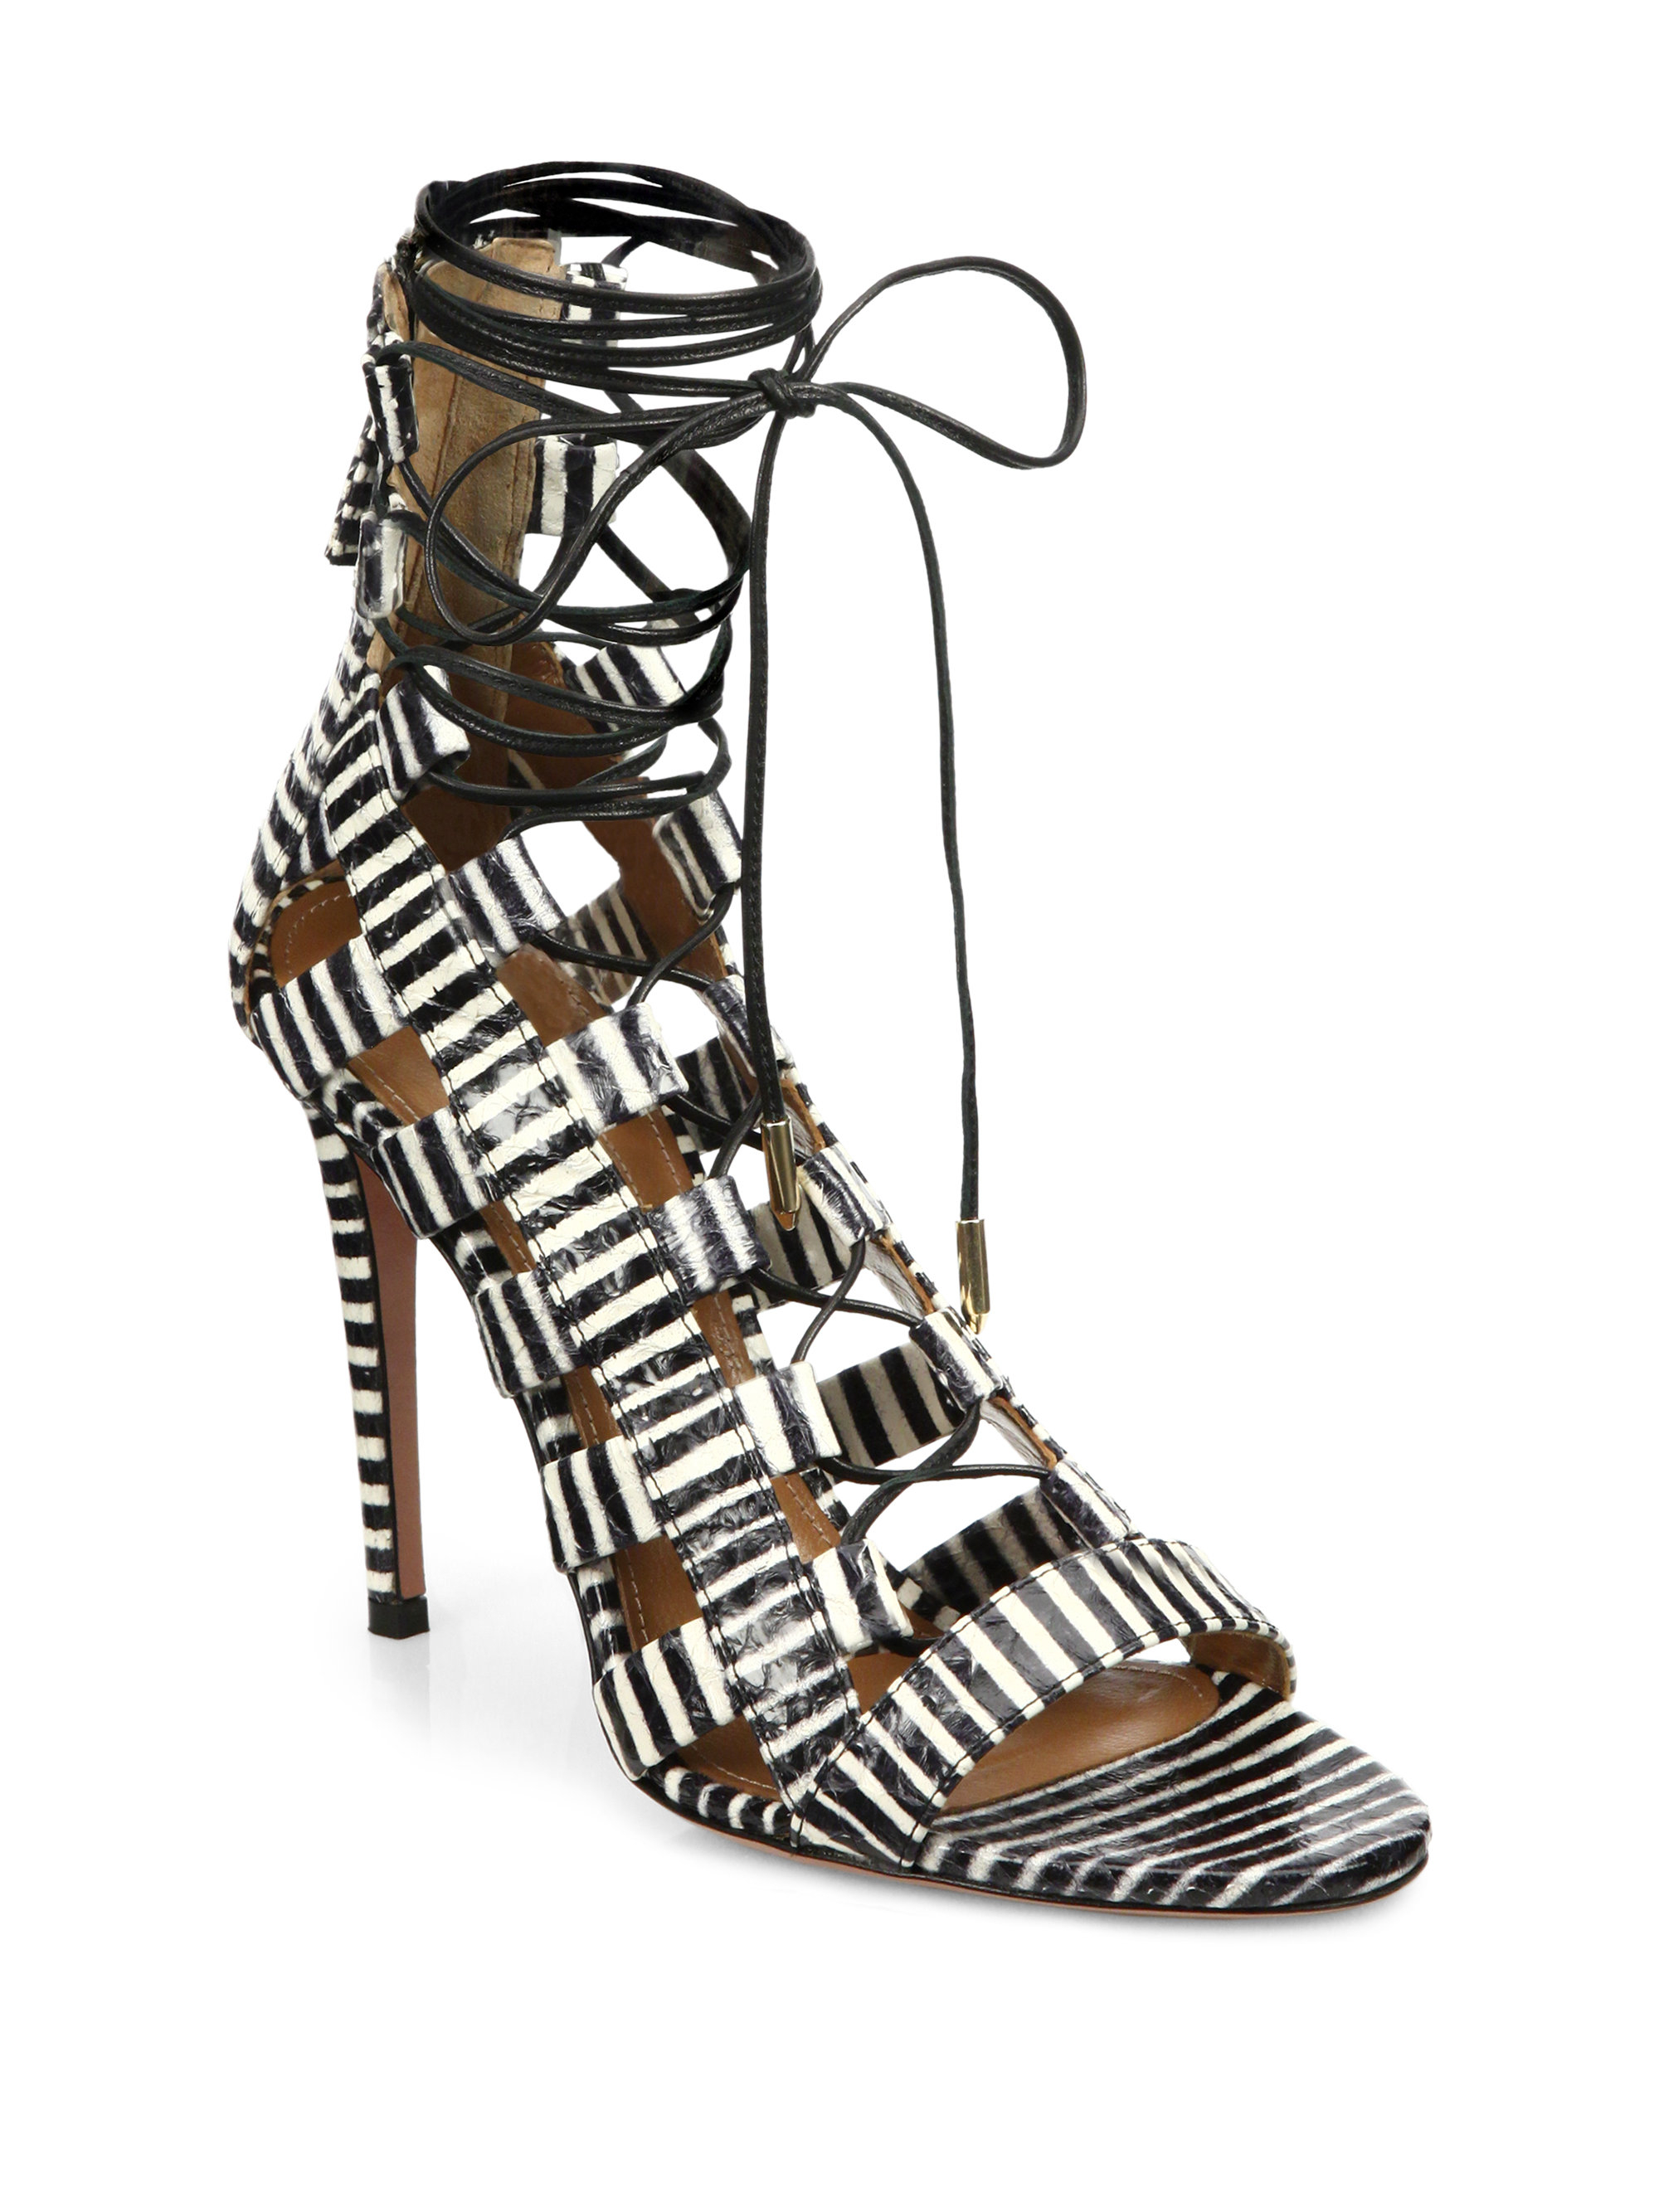 5ff0de8566e Lyst - Aquazzura Amazon Striped Leather Lace-up Sandals in Black